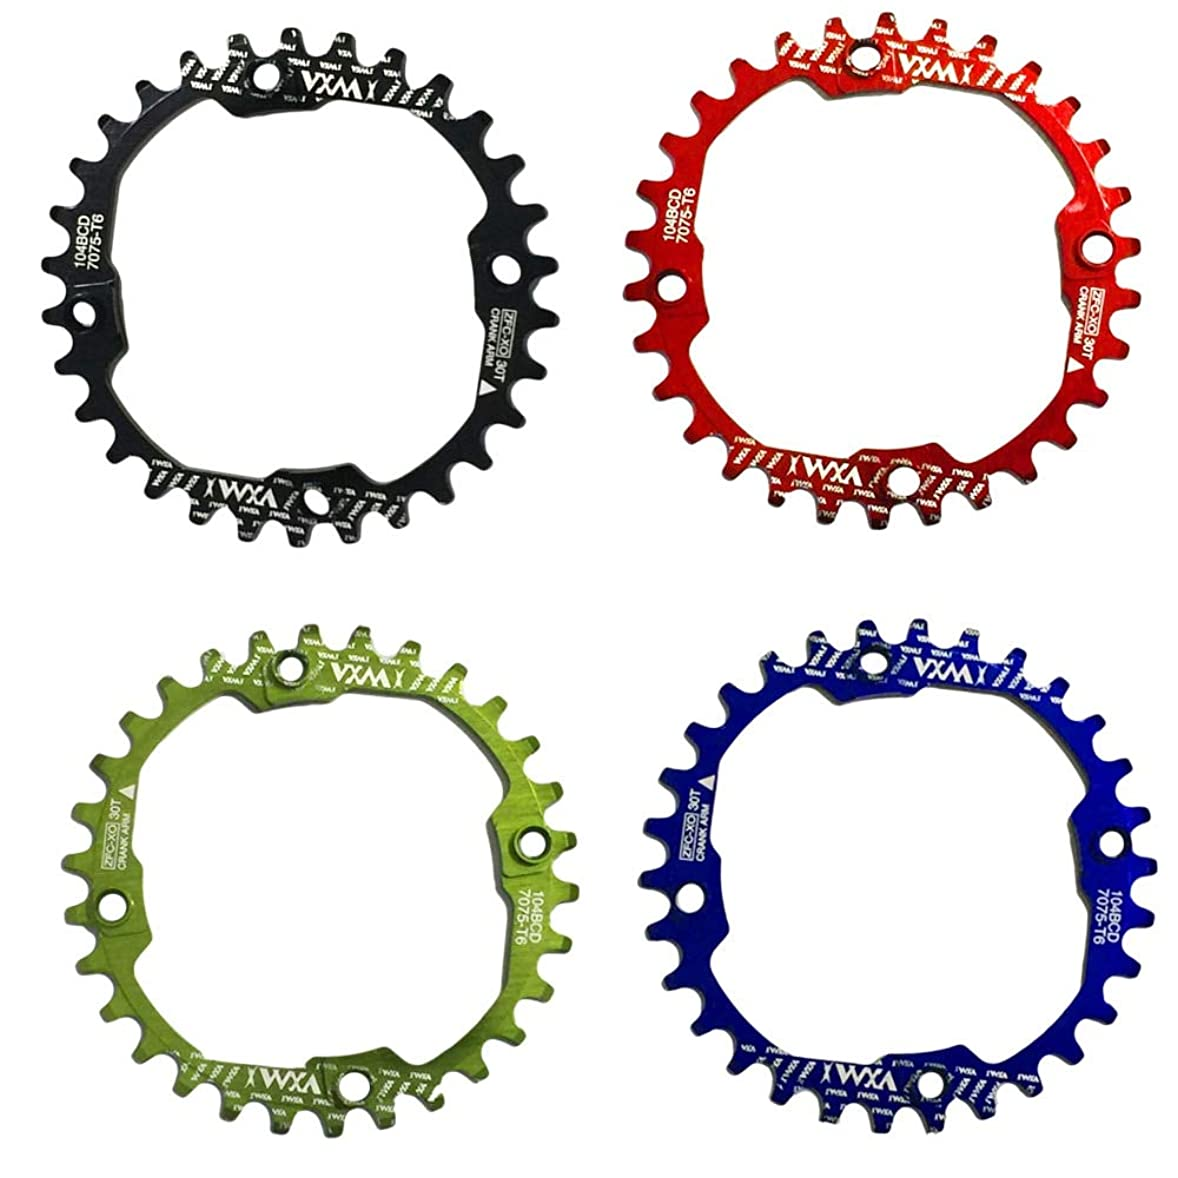 稚魚マウンド虫を数えるPropenary - 1PC Bicycle Chainwheel Crank 30T 104BCD Aluminum Alloy Narrow Wide Chainring Round Bike Chainwheel Crankset Bicycle Parts [ Green ]